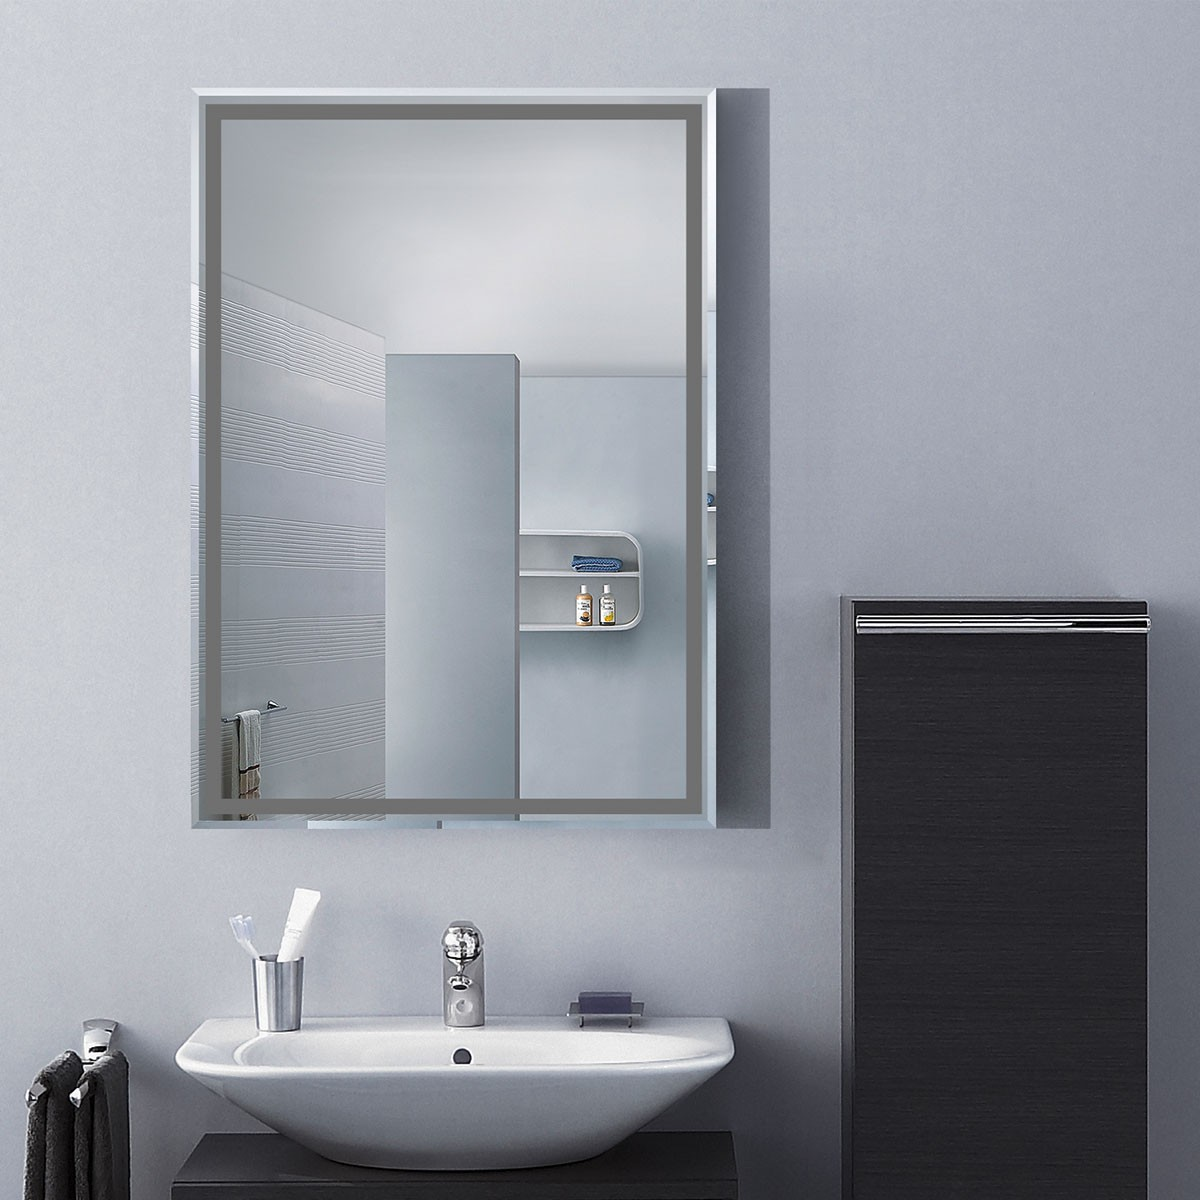 28 X 20 In Wall Mounted Rectangle Bathroom Mirror Dk Od